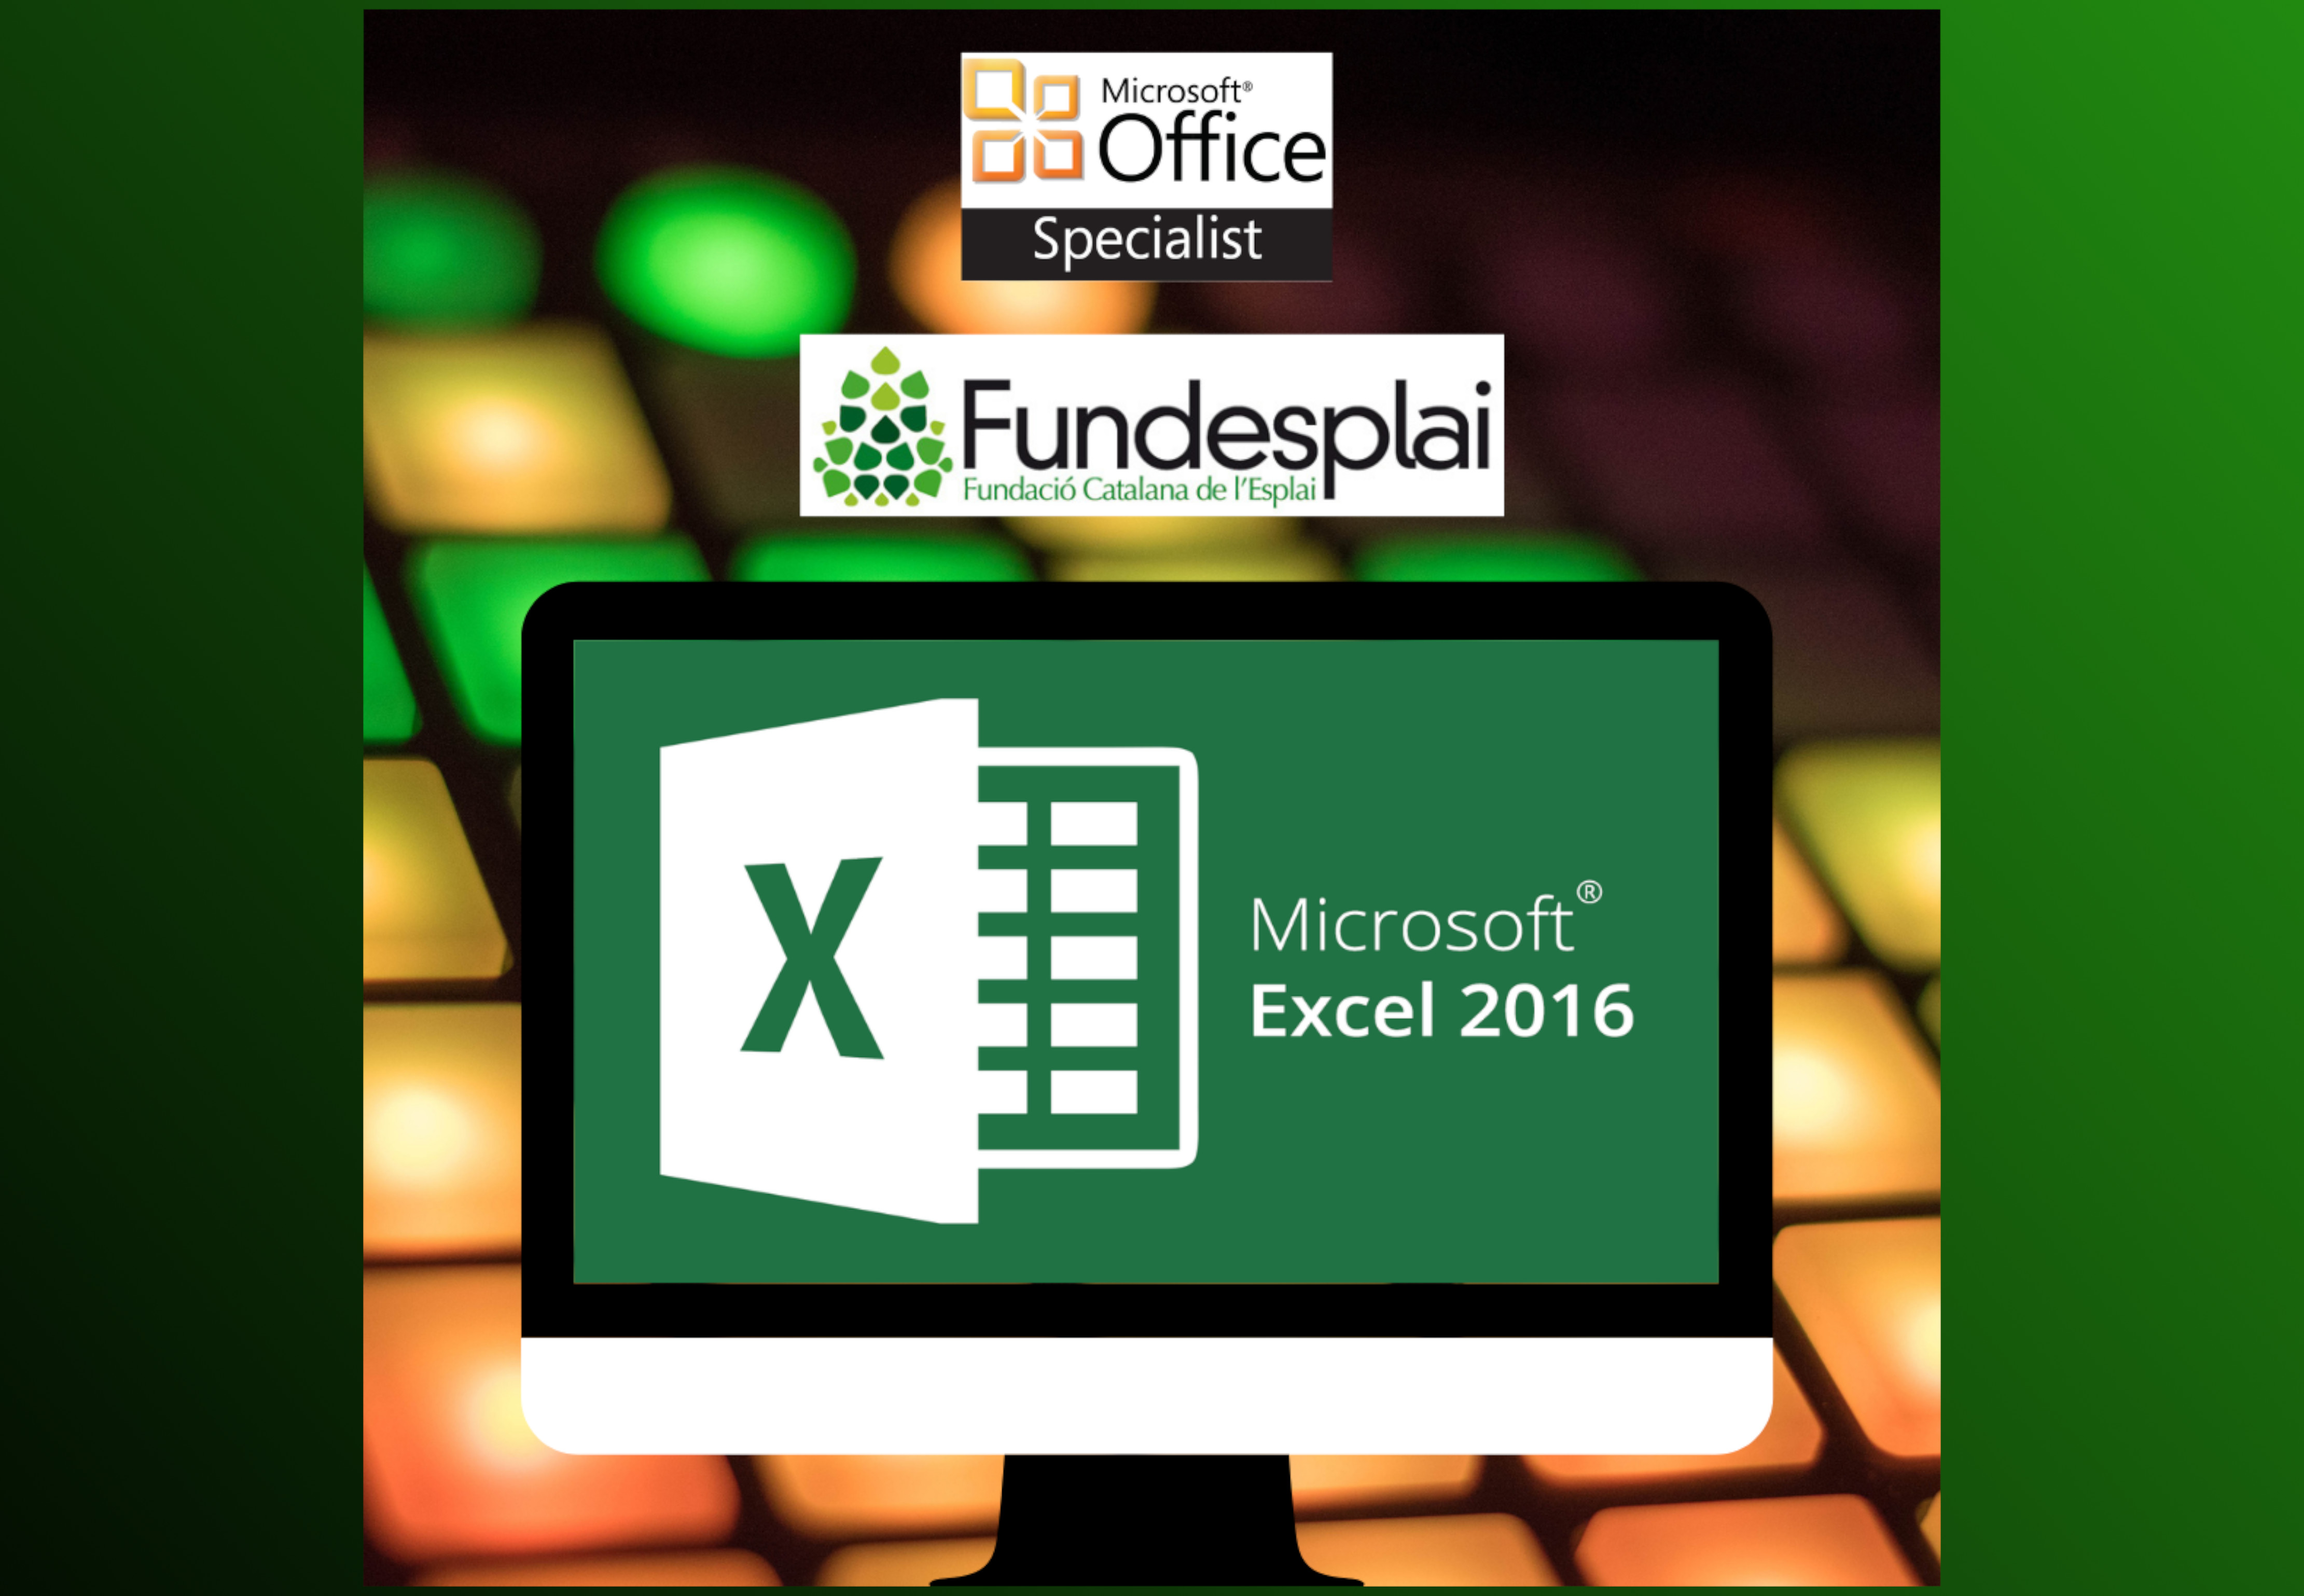 MICROSOFT OFFICE SPECIALIST - EXCEL 2016